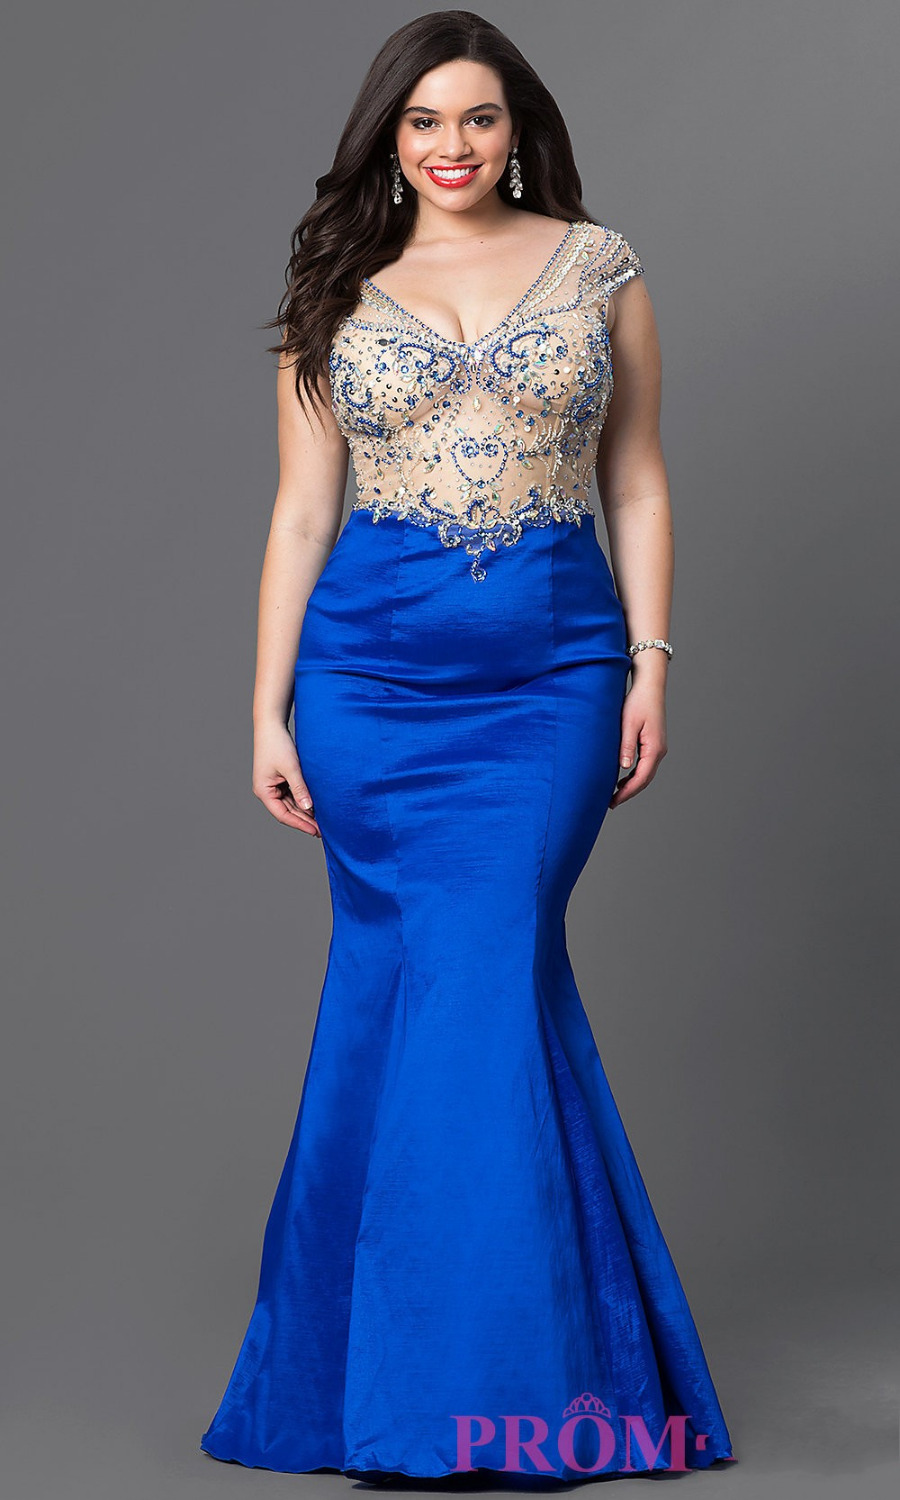 Plus Size Designer Evening Gowns | Dress images